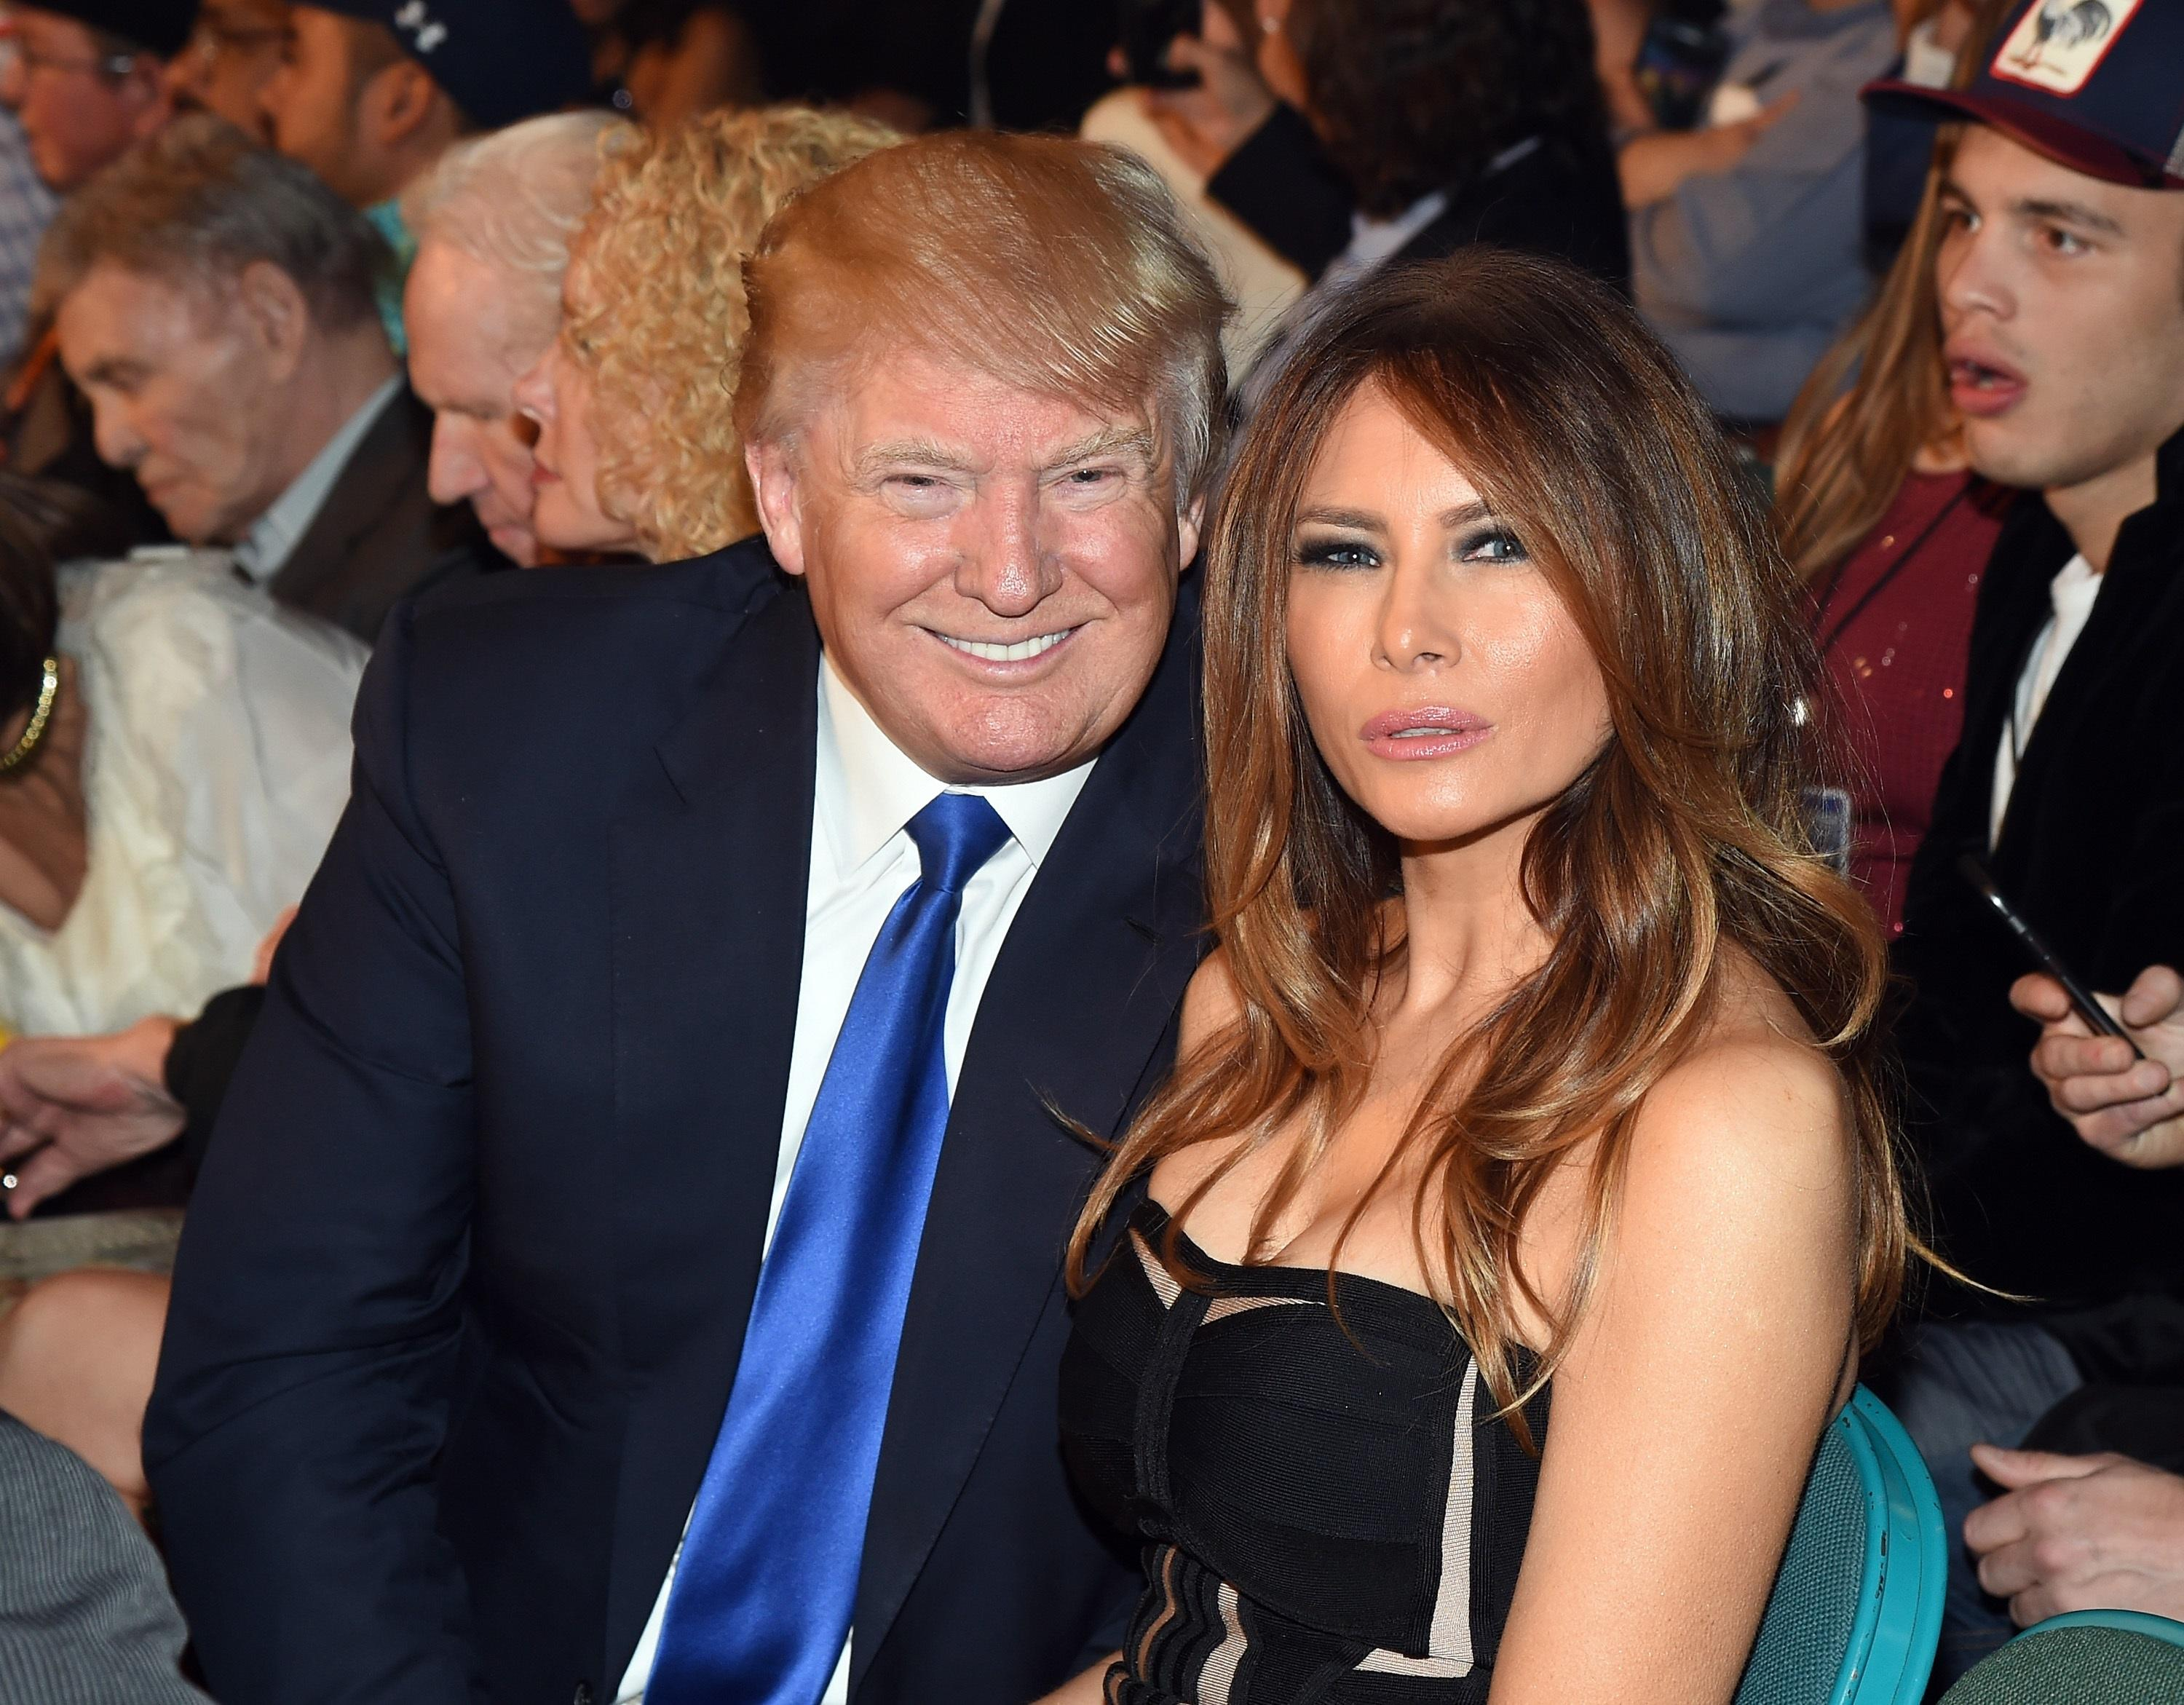 Image result for melania trump and ivana fight